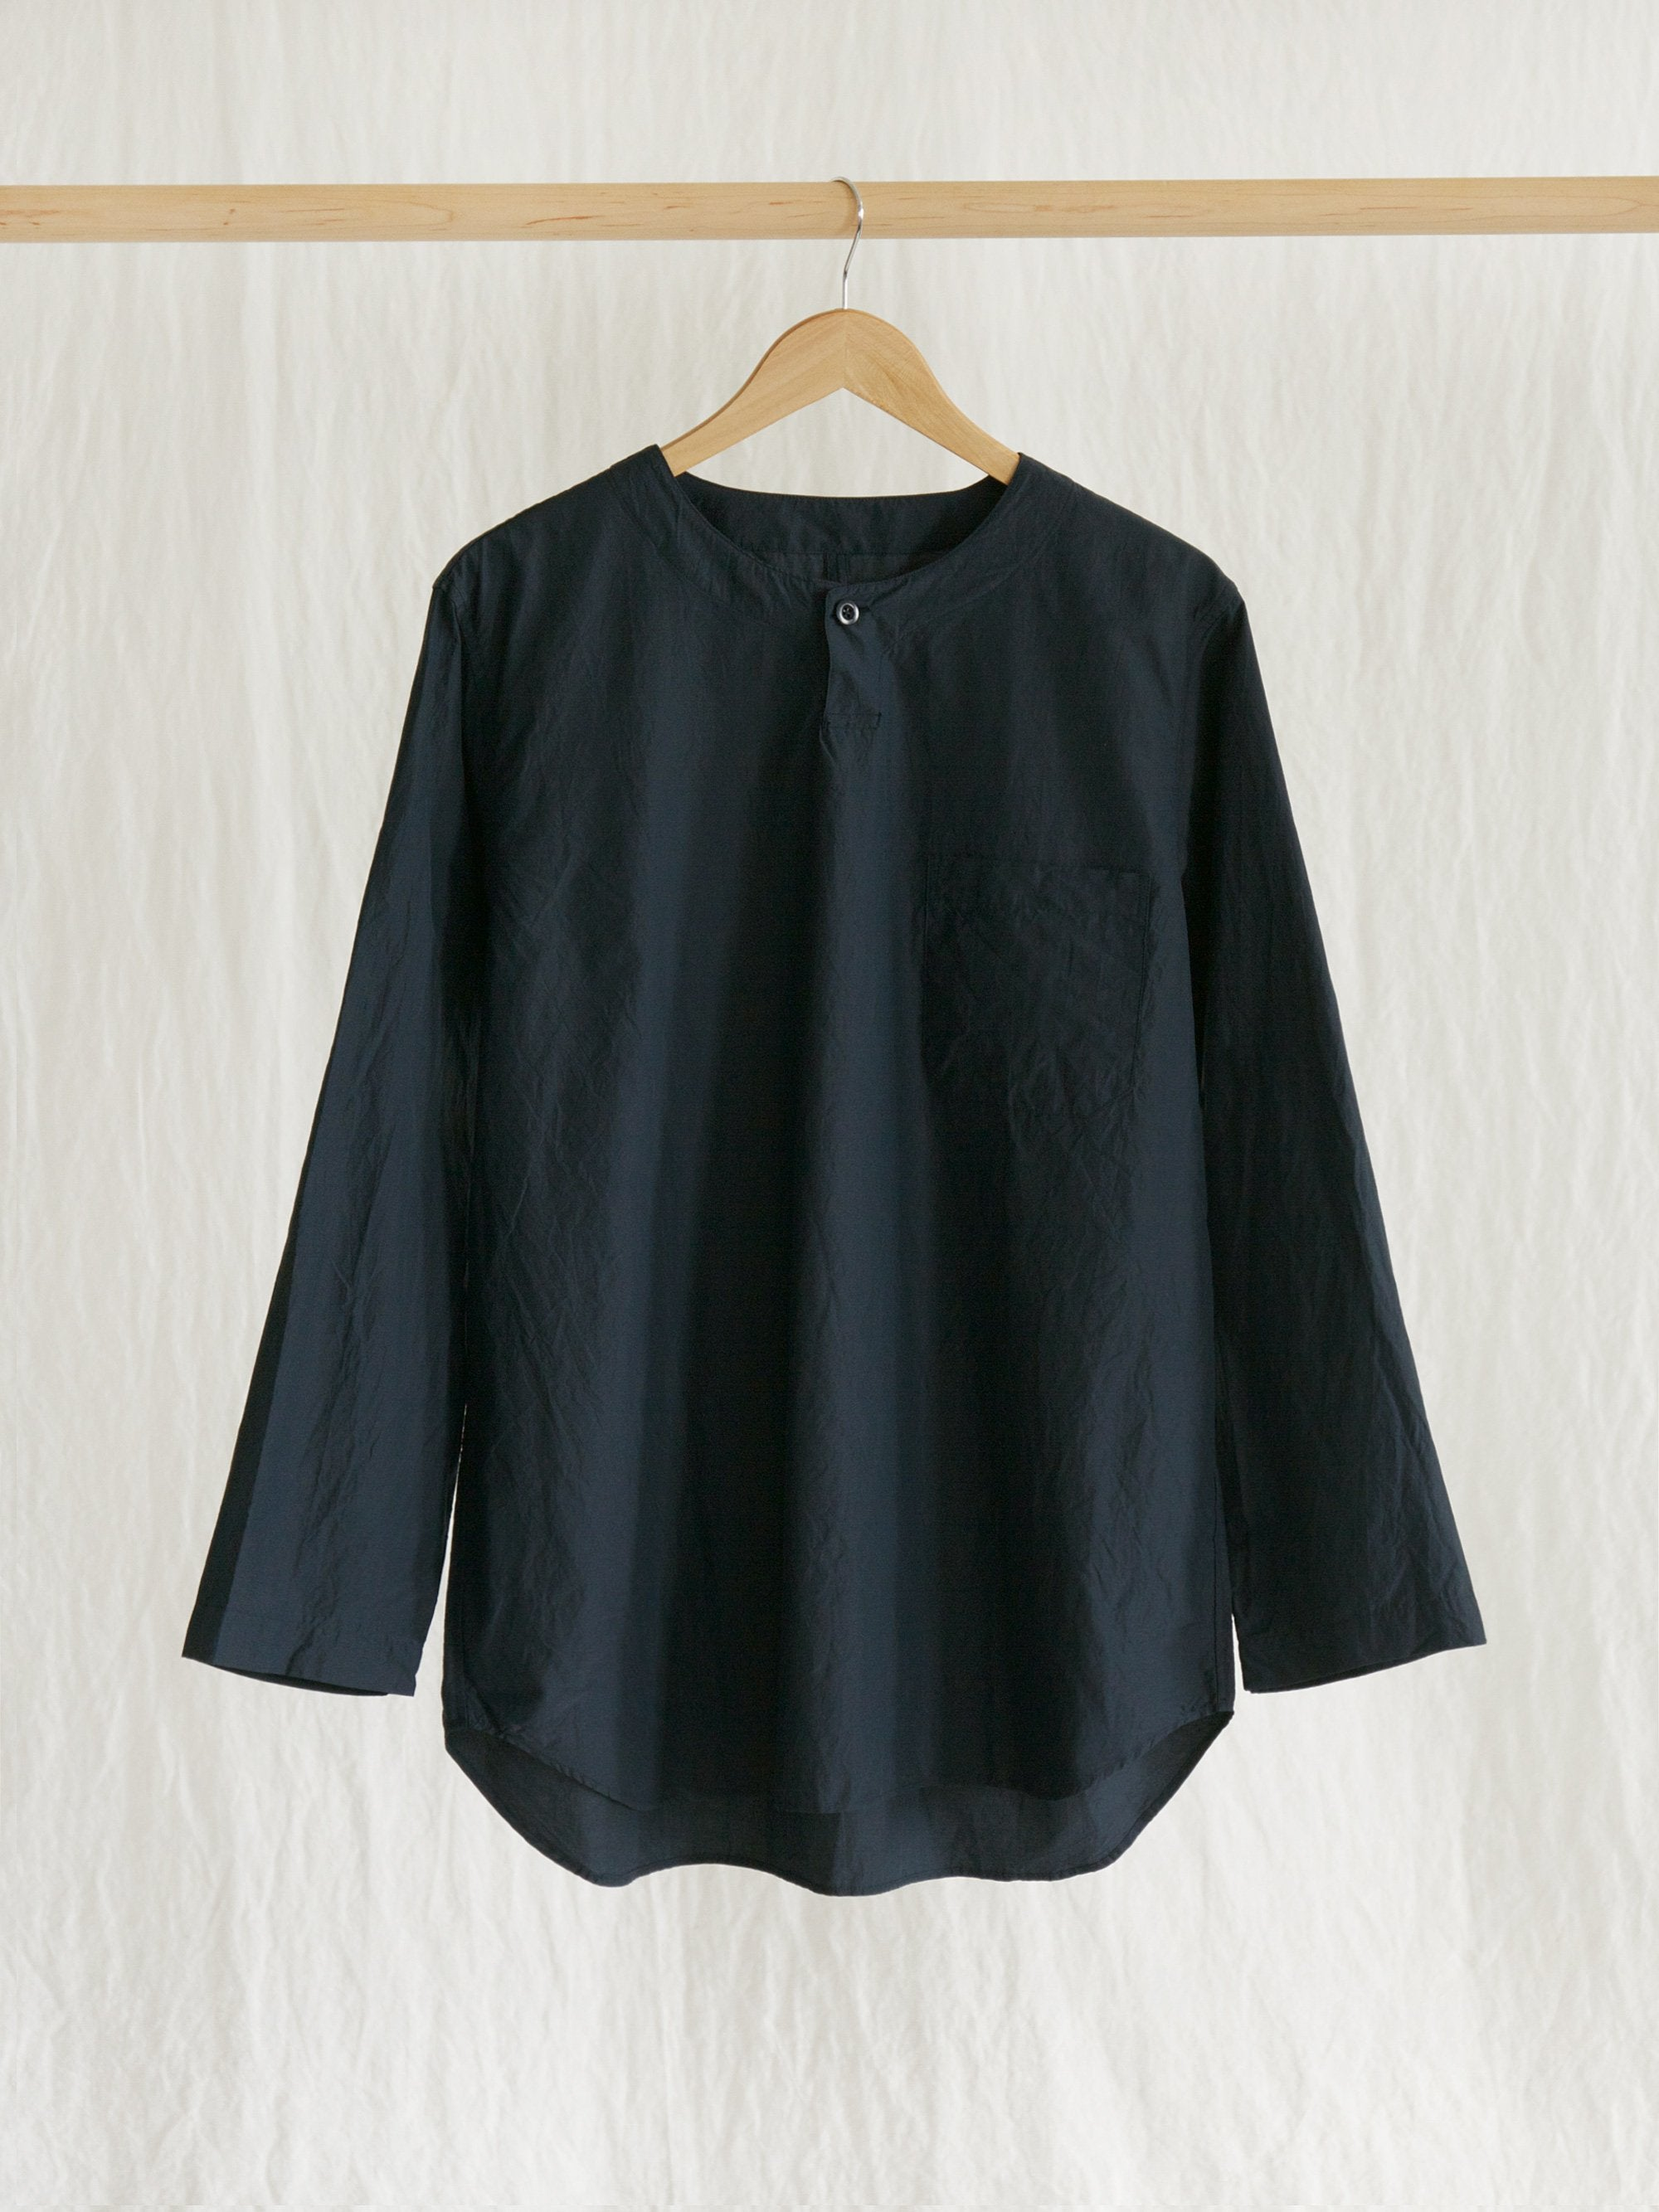 Namu Shop - ts(s) Cotton Silk Henley Neck Shirt